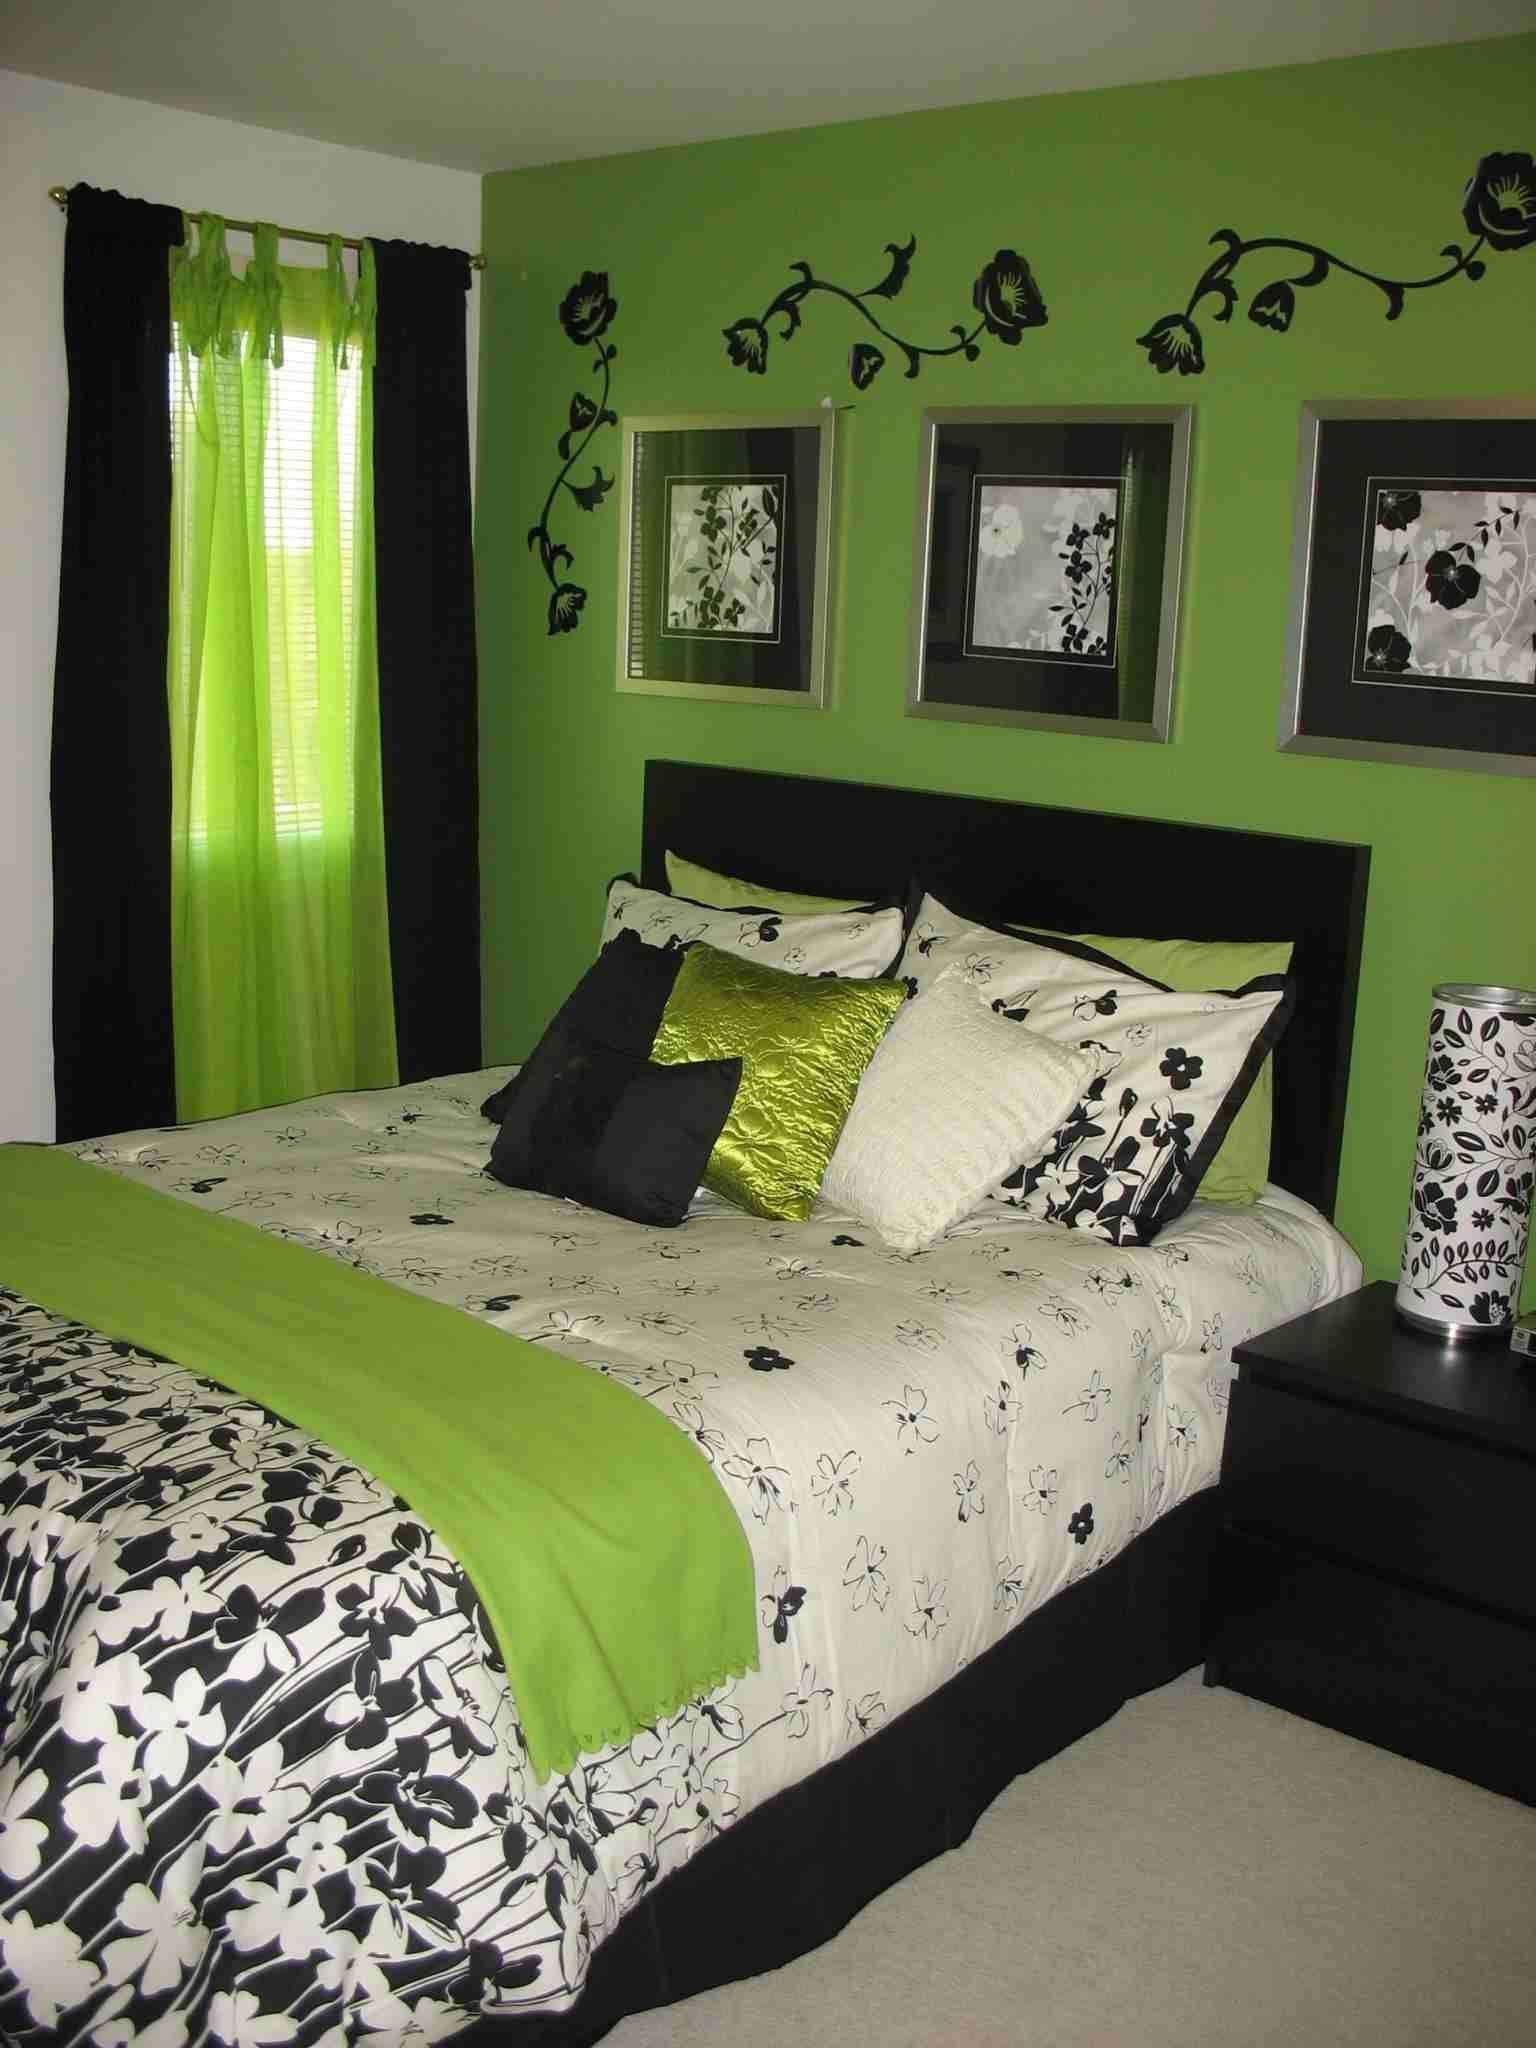 Walls Gray Bedroom Green White Polka Bed Sheet Plus Blanket Having Circles Placed On The Light Blue And Decorating Ideas